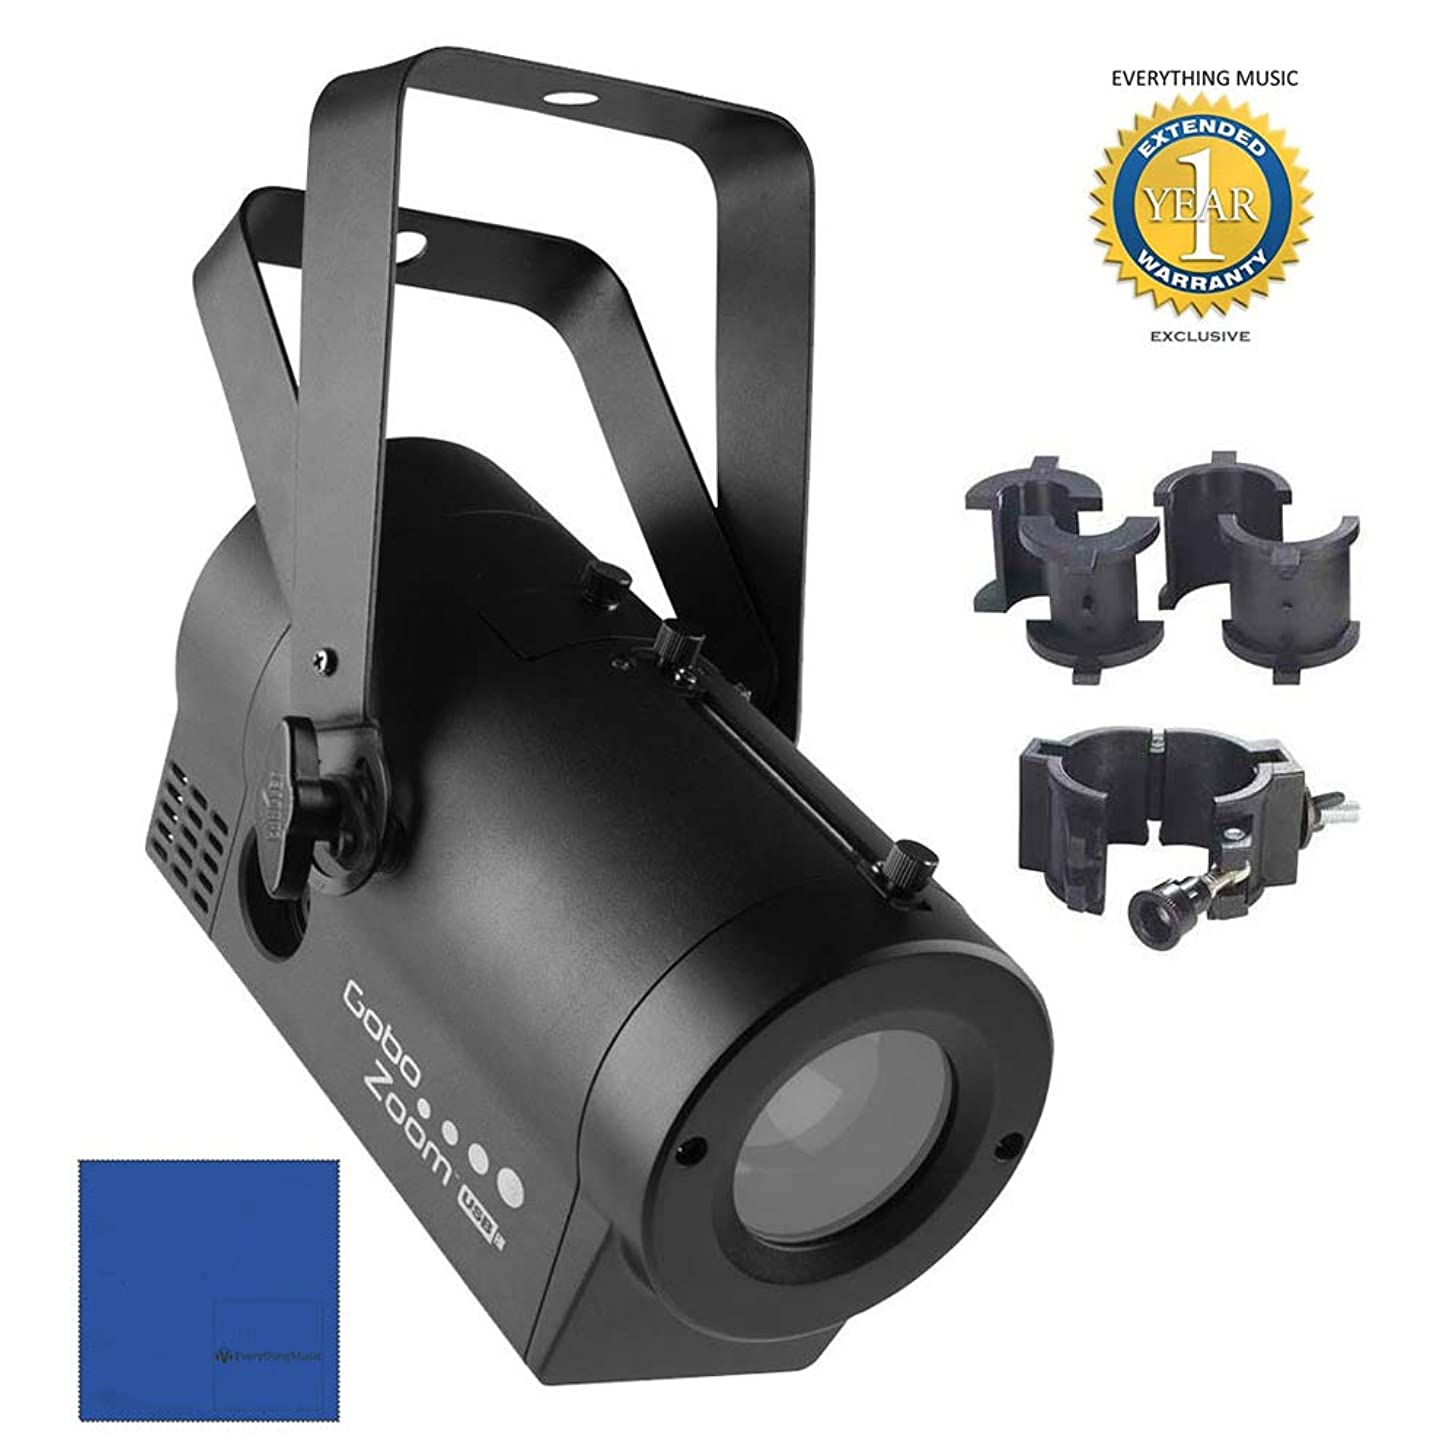 Chauvet DJ Gobo Zoom USB LED Gobo Projector Lighting Effects Fixture with CLP-10 Light-Duty Adjustable O Clamp?with 1 Year Free Extended Warranty?and?Microfiber